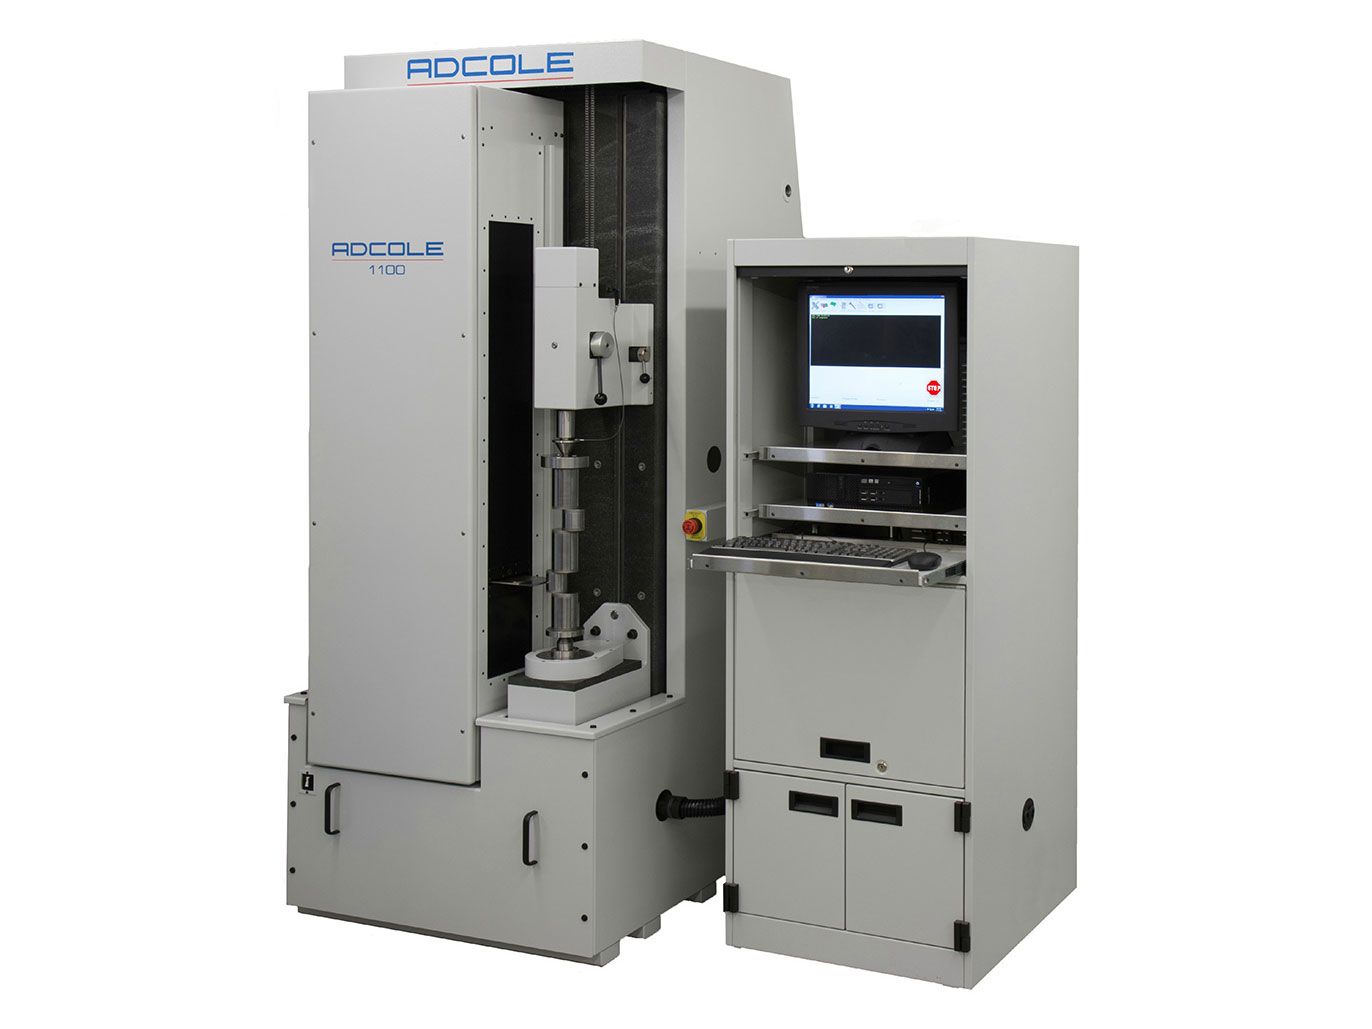 Adcole Model 1100-GX: Linear Encoder